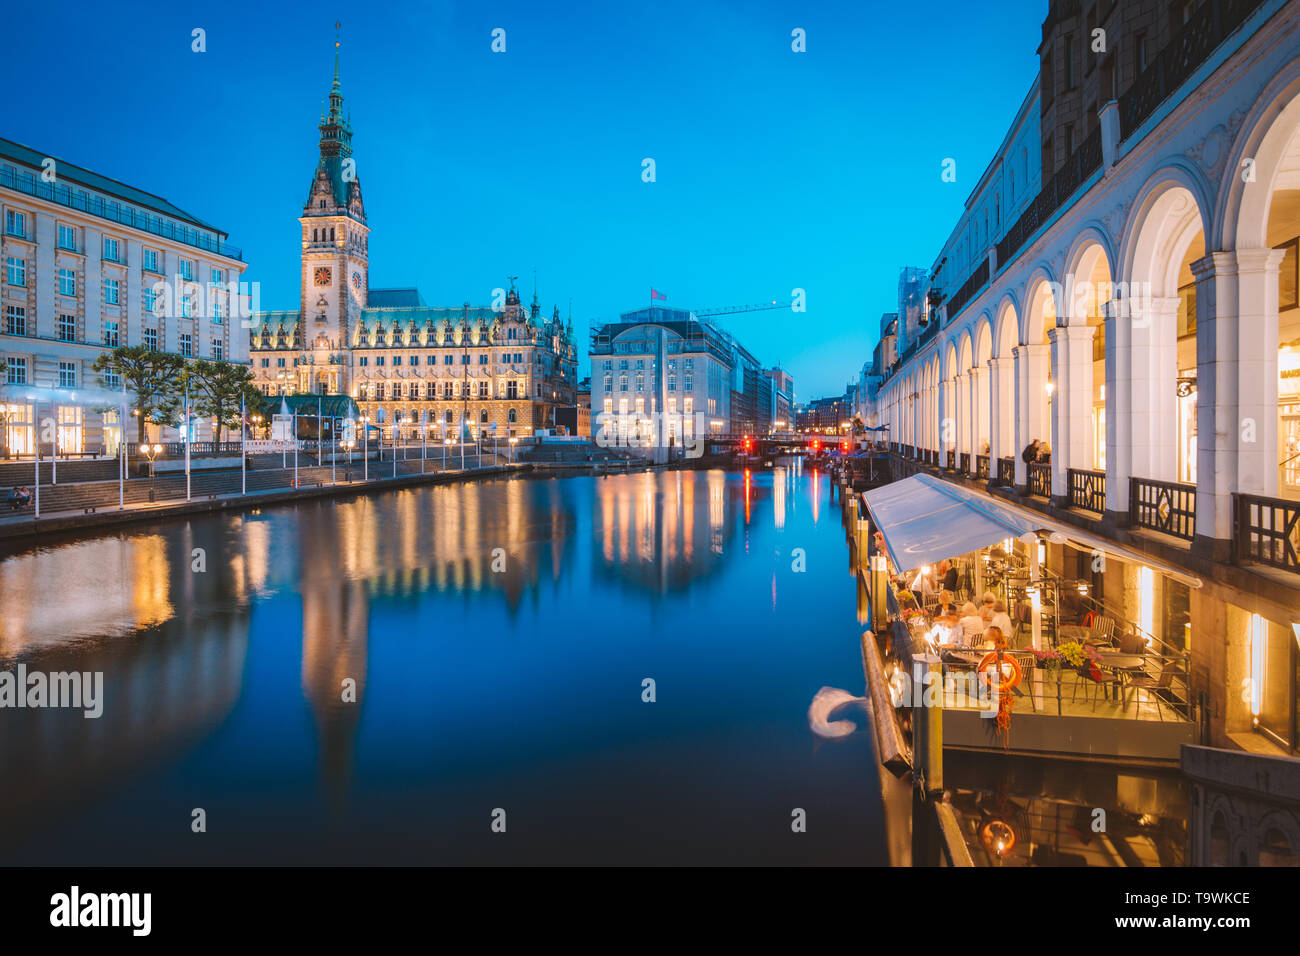 Classic twilight view of Hamburg city center with historic town hall reflecting in Binnenalster during blue hour at dusk, Germany - Stock Image